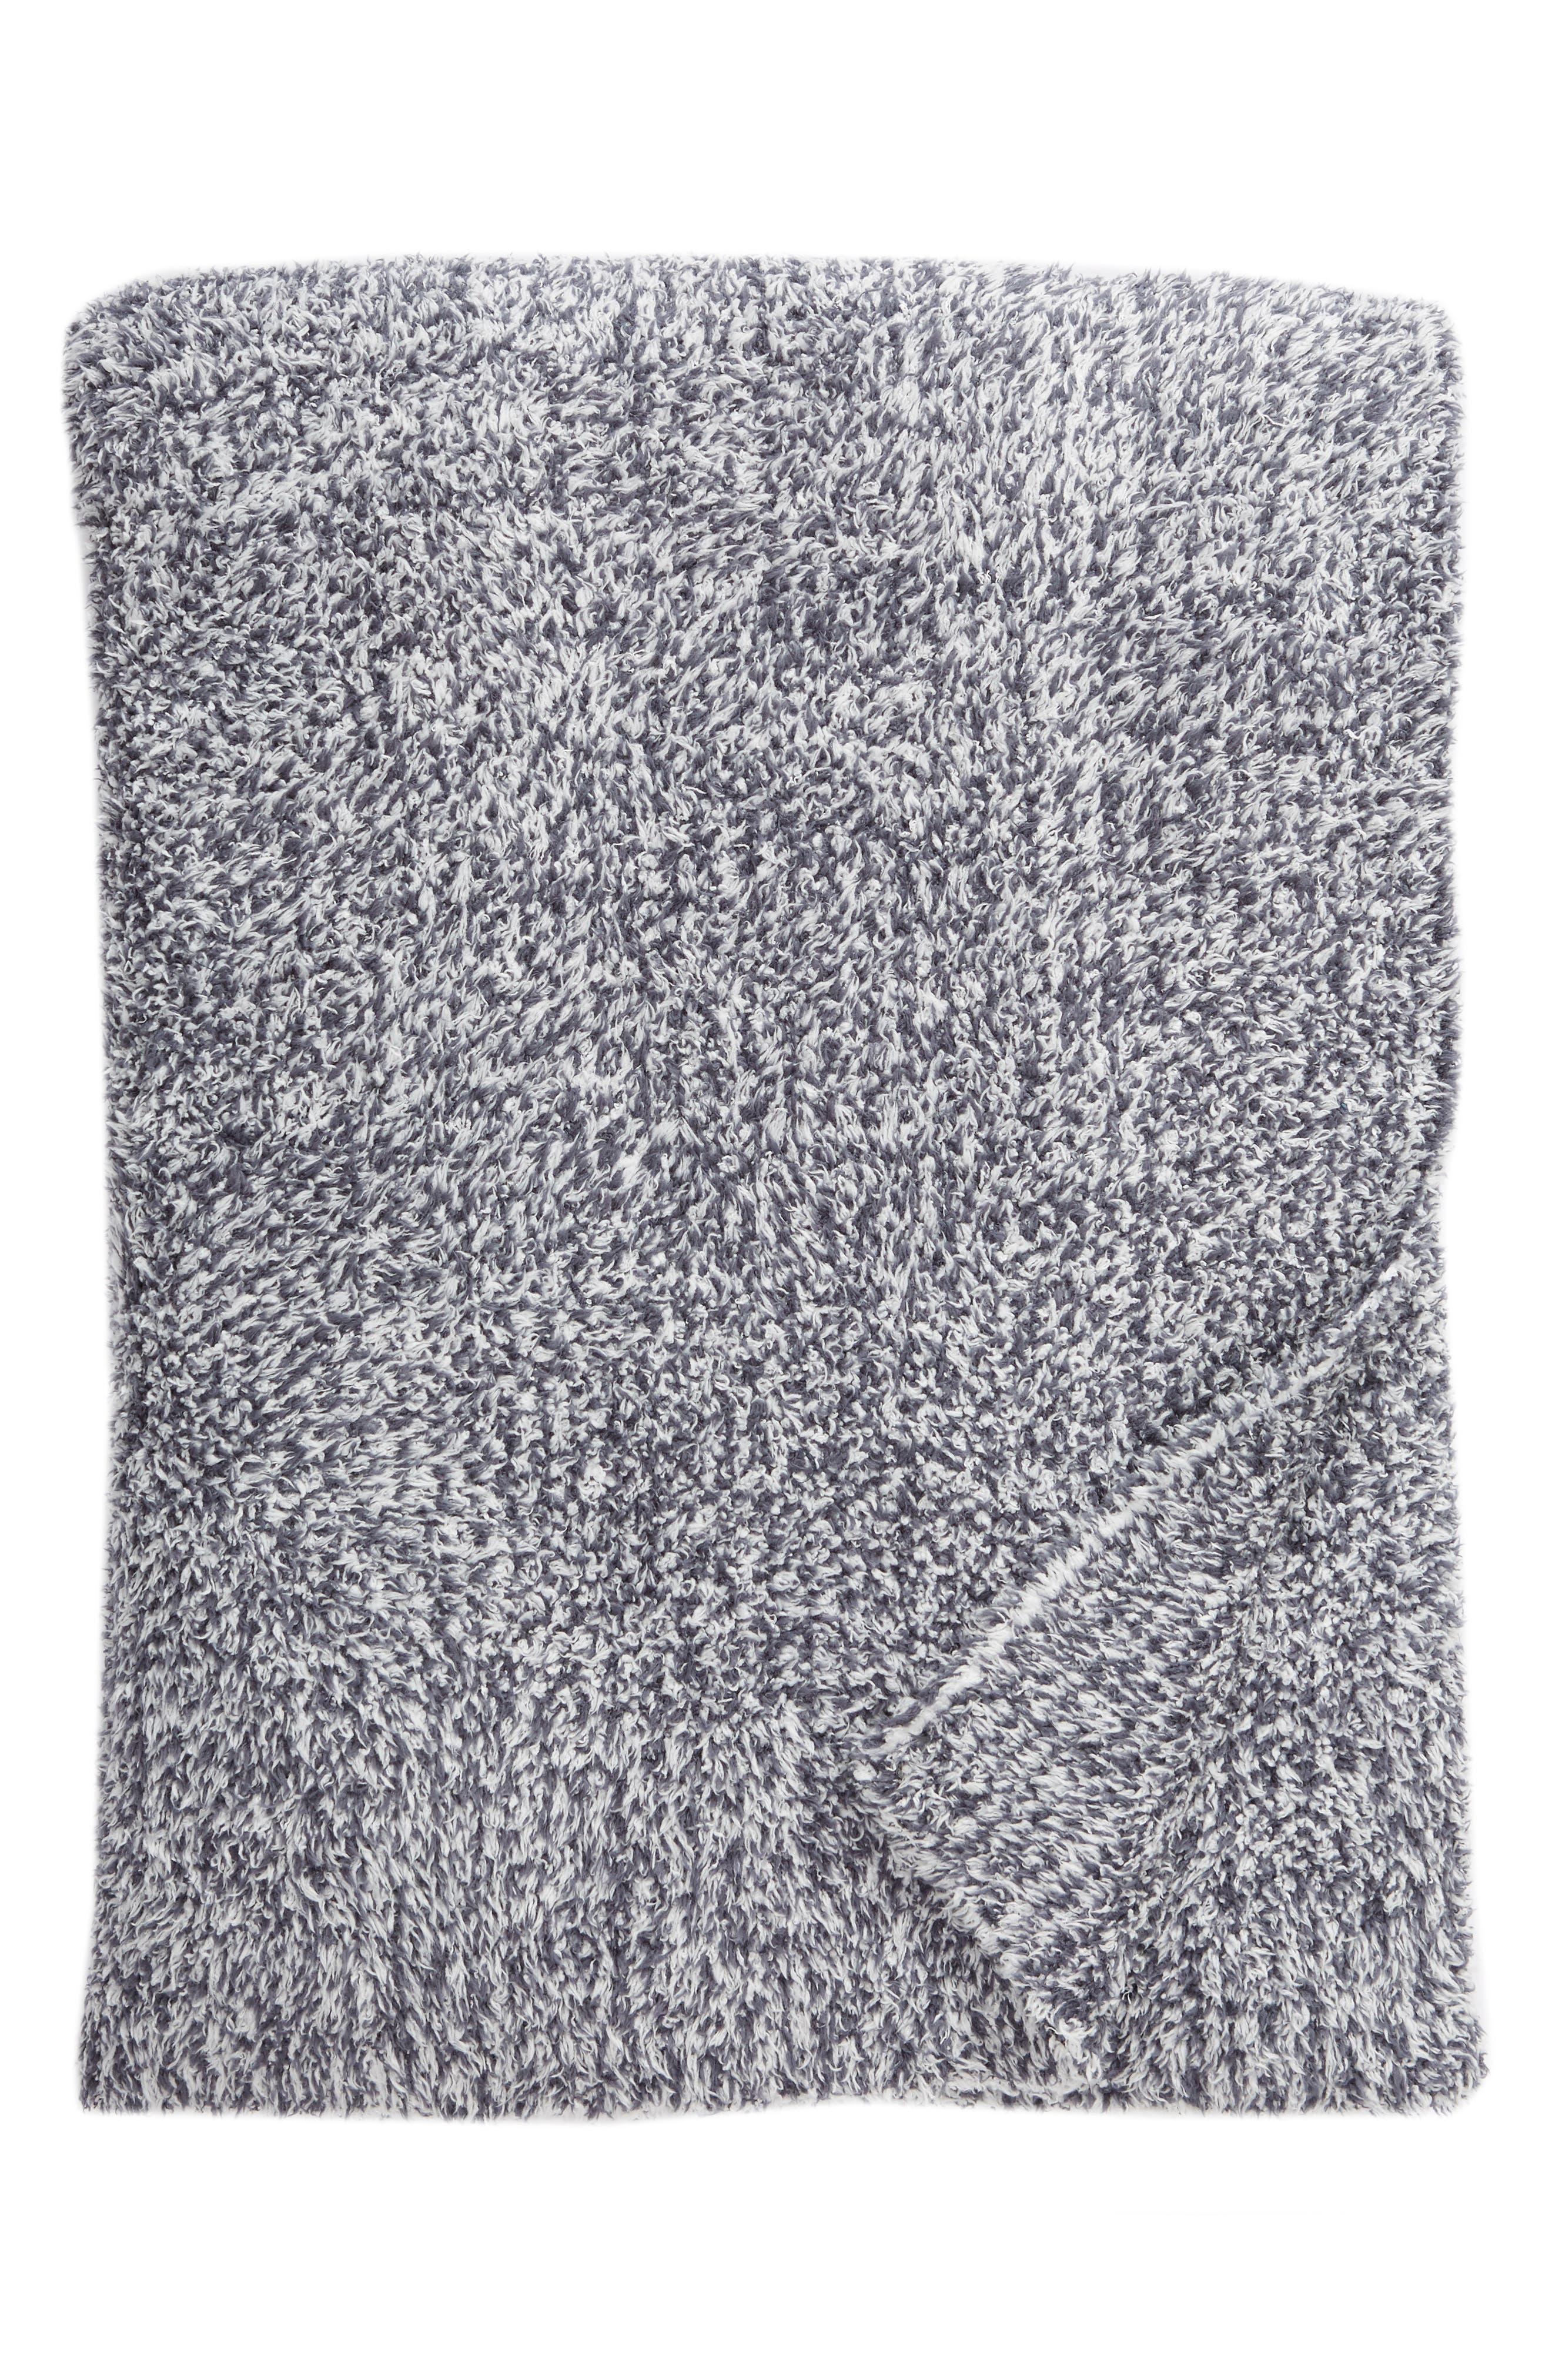 Cozychic<sup>®</sup> Heathered Throw Blanket,                             Main thumbnail 1, color,                             Pacific Blue/ White